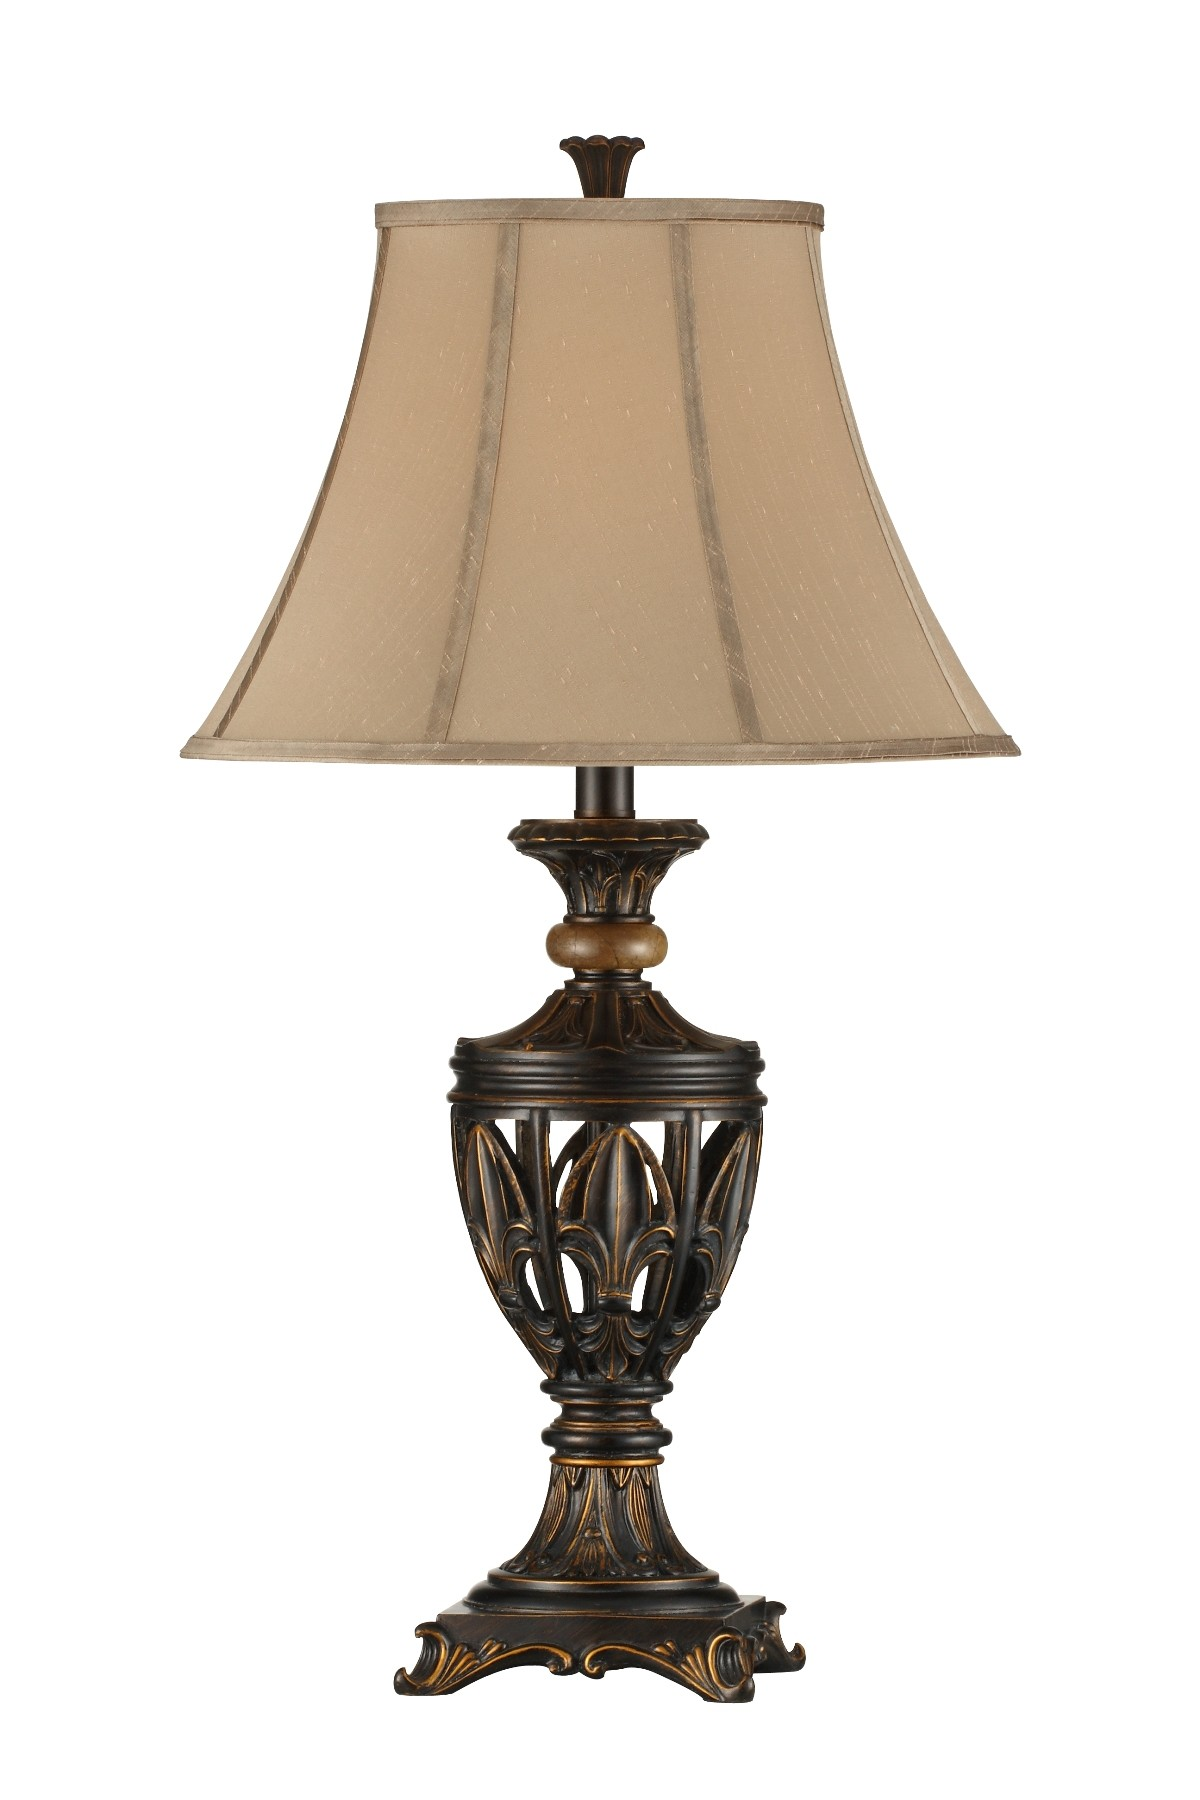 fleur de lis open work table lamp set of 2 from steinworld 98901 coleman furniture. Black Bedroom Furniture Sets. Home Design Ideas